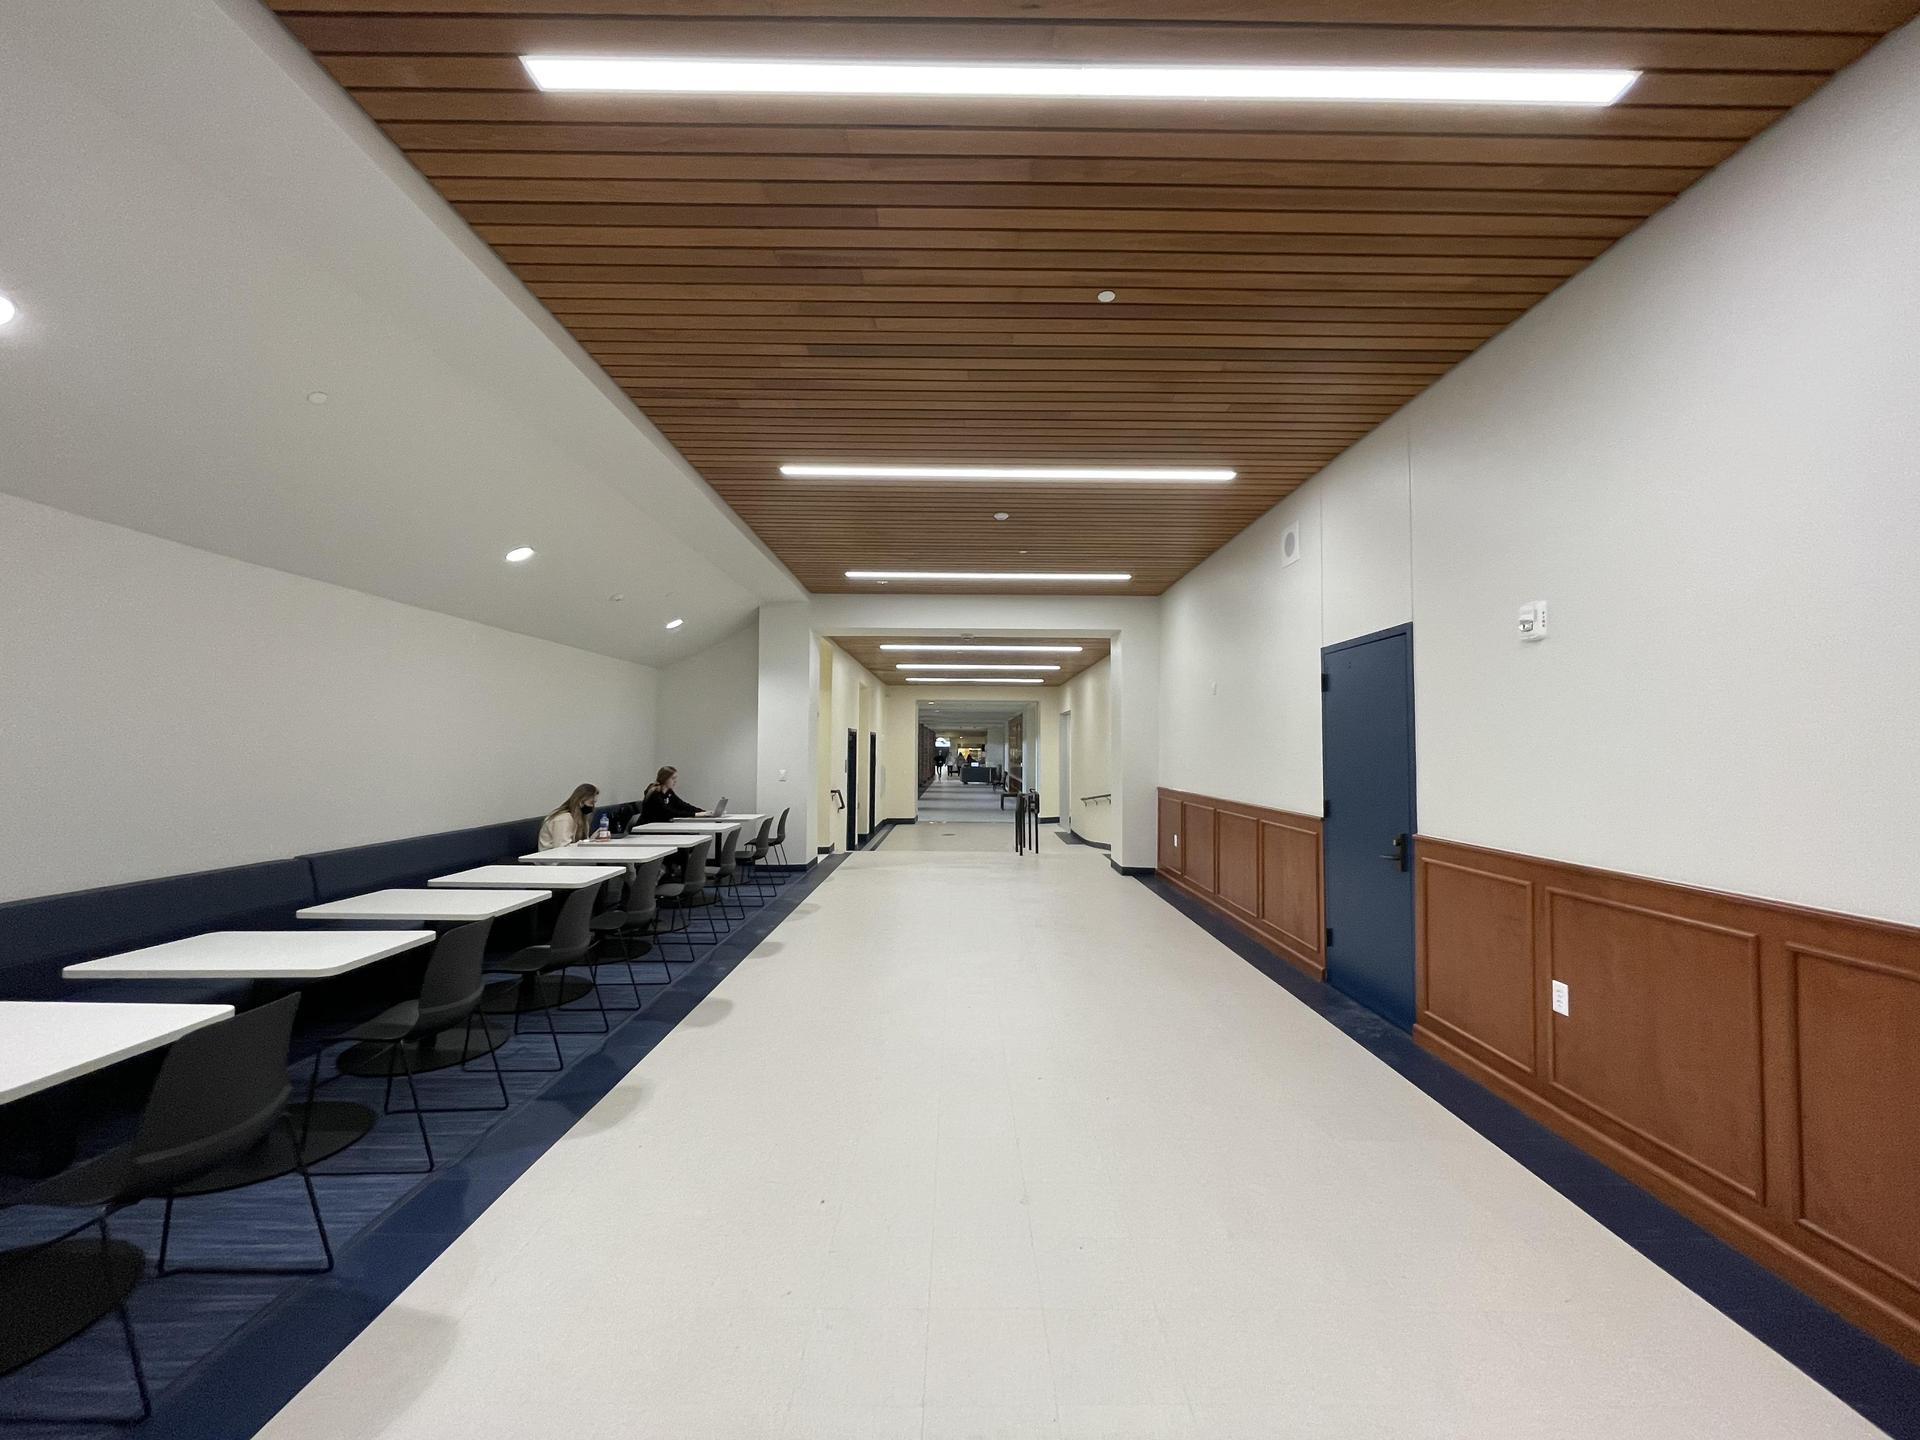 HPHS new entry connecting hallway